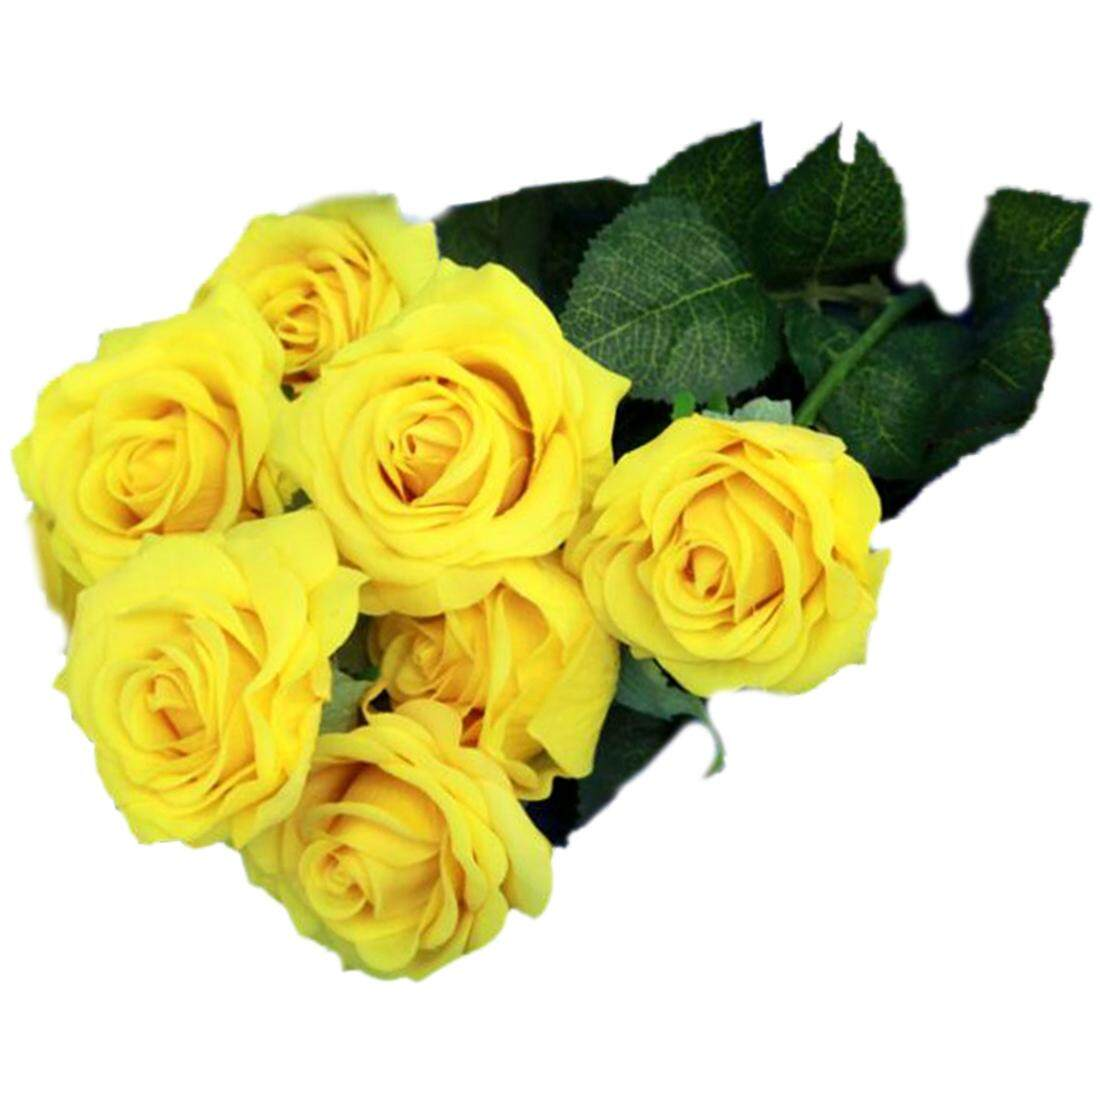 10 pcs Latex Real Touch Rose Decor Rose Artificial Flowers Silk Flowers Floral Wedding Bouquet Home